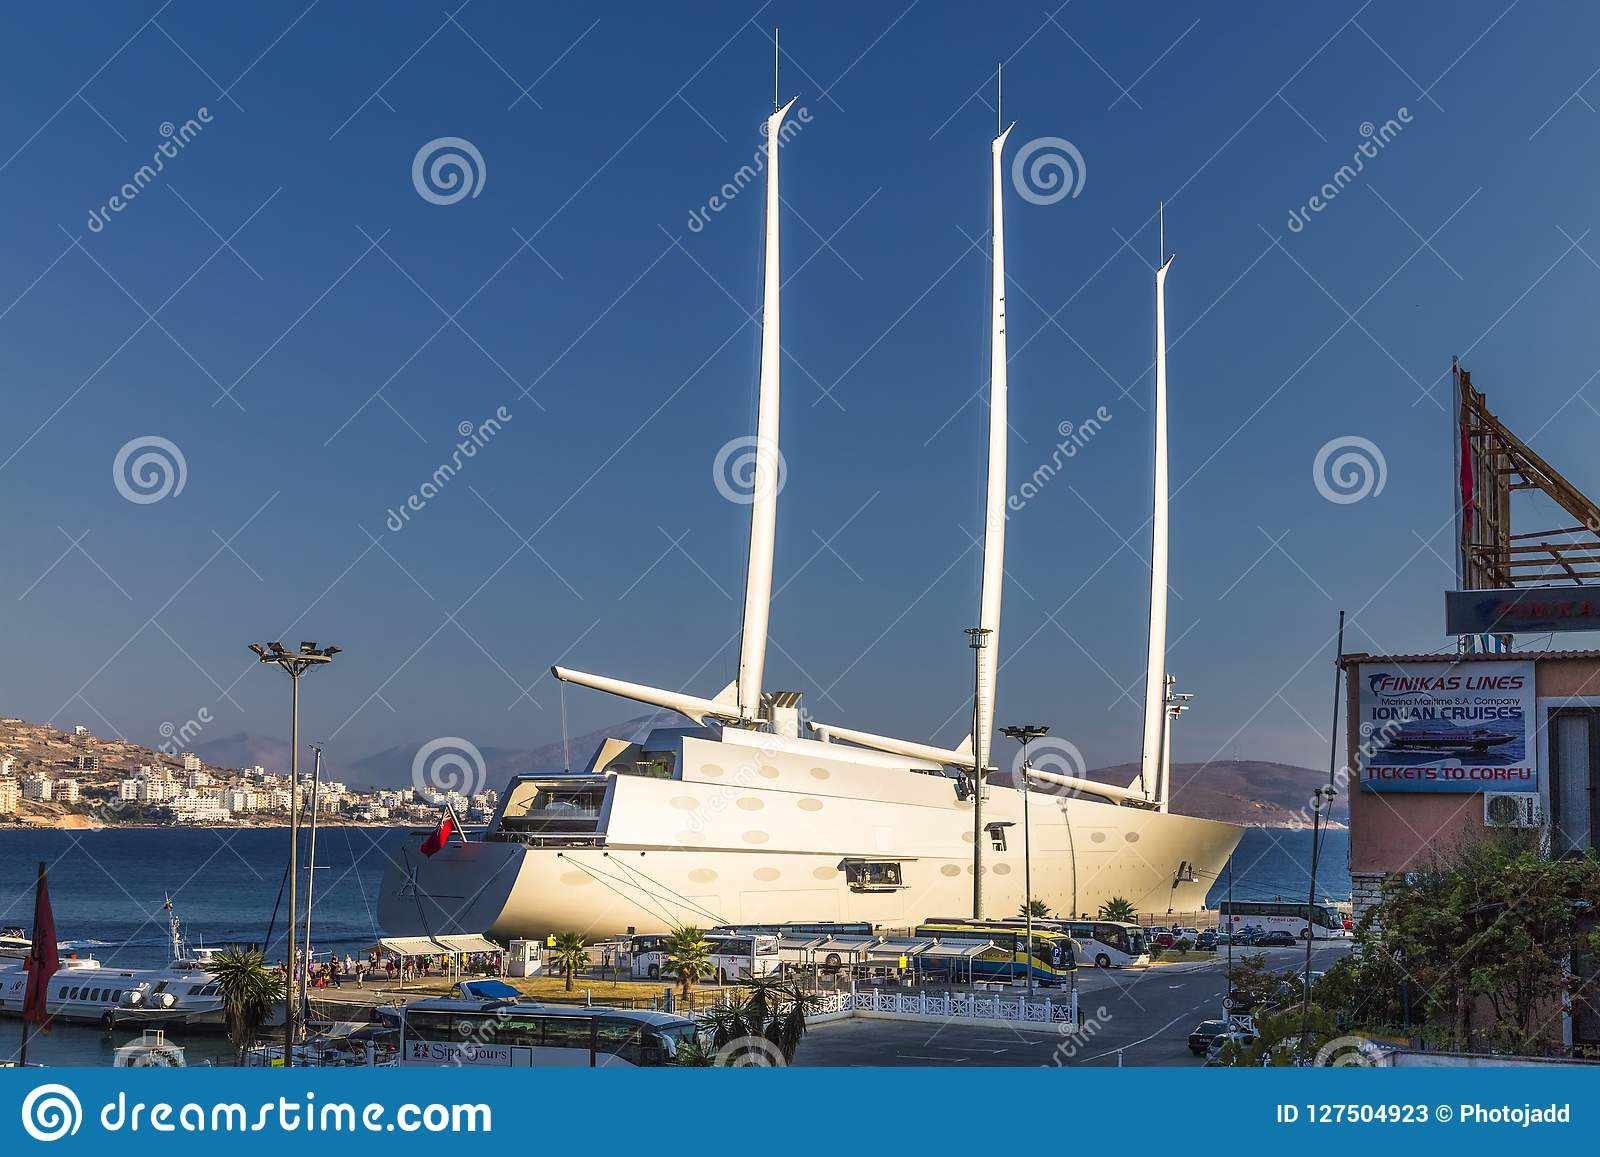 Sailing Yacht A Sya One Of The Biggdµst Sailing Yachts In The World Editorial Stock Photo Image Of Navigation Holiday 127504923